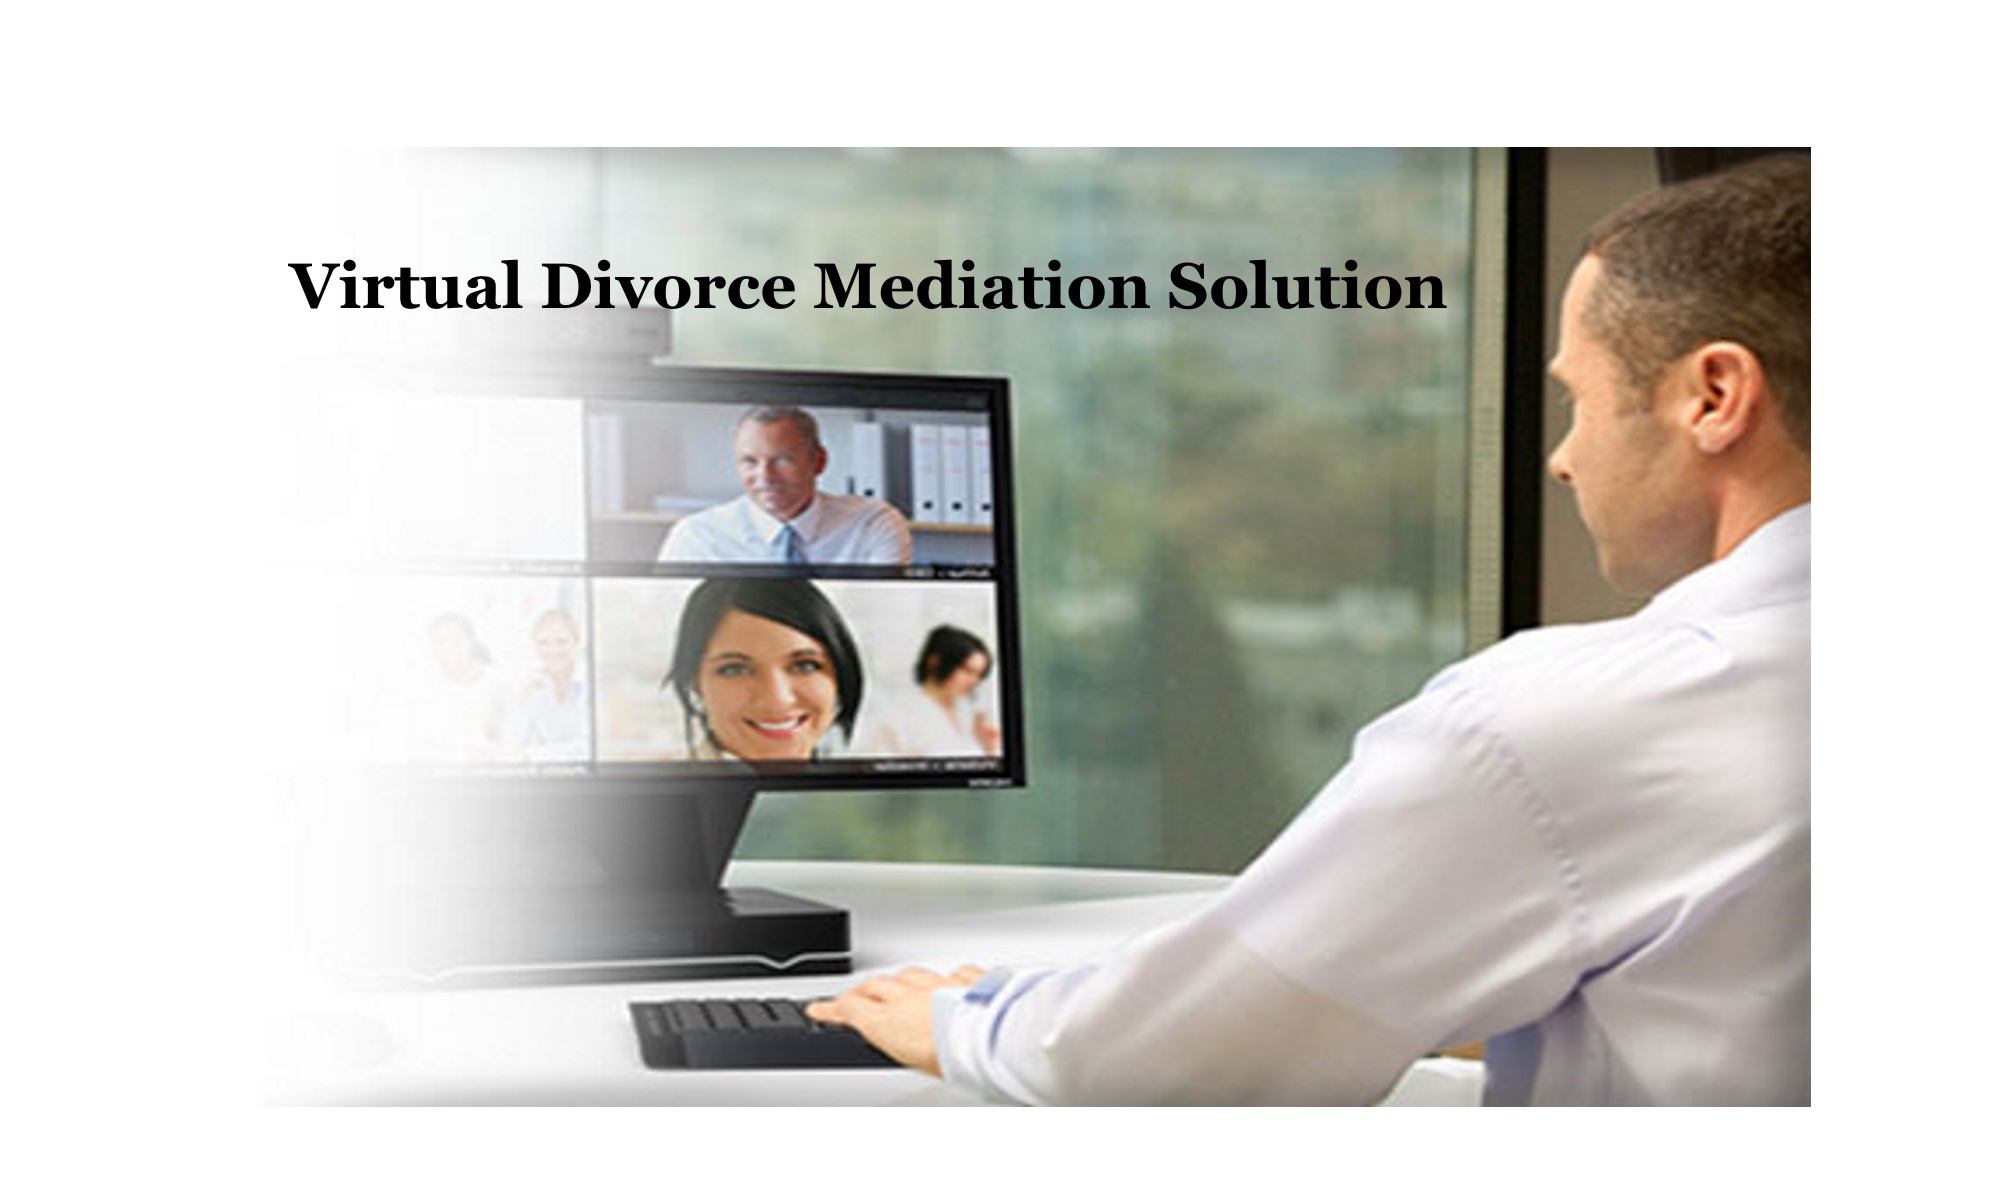 Virtual Divorce Mediation| Hamburg, NY 14075 – 1-716-404-4140 ext. 2